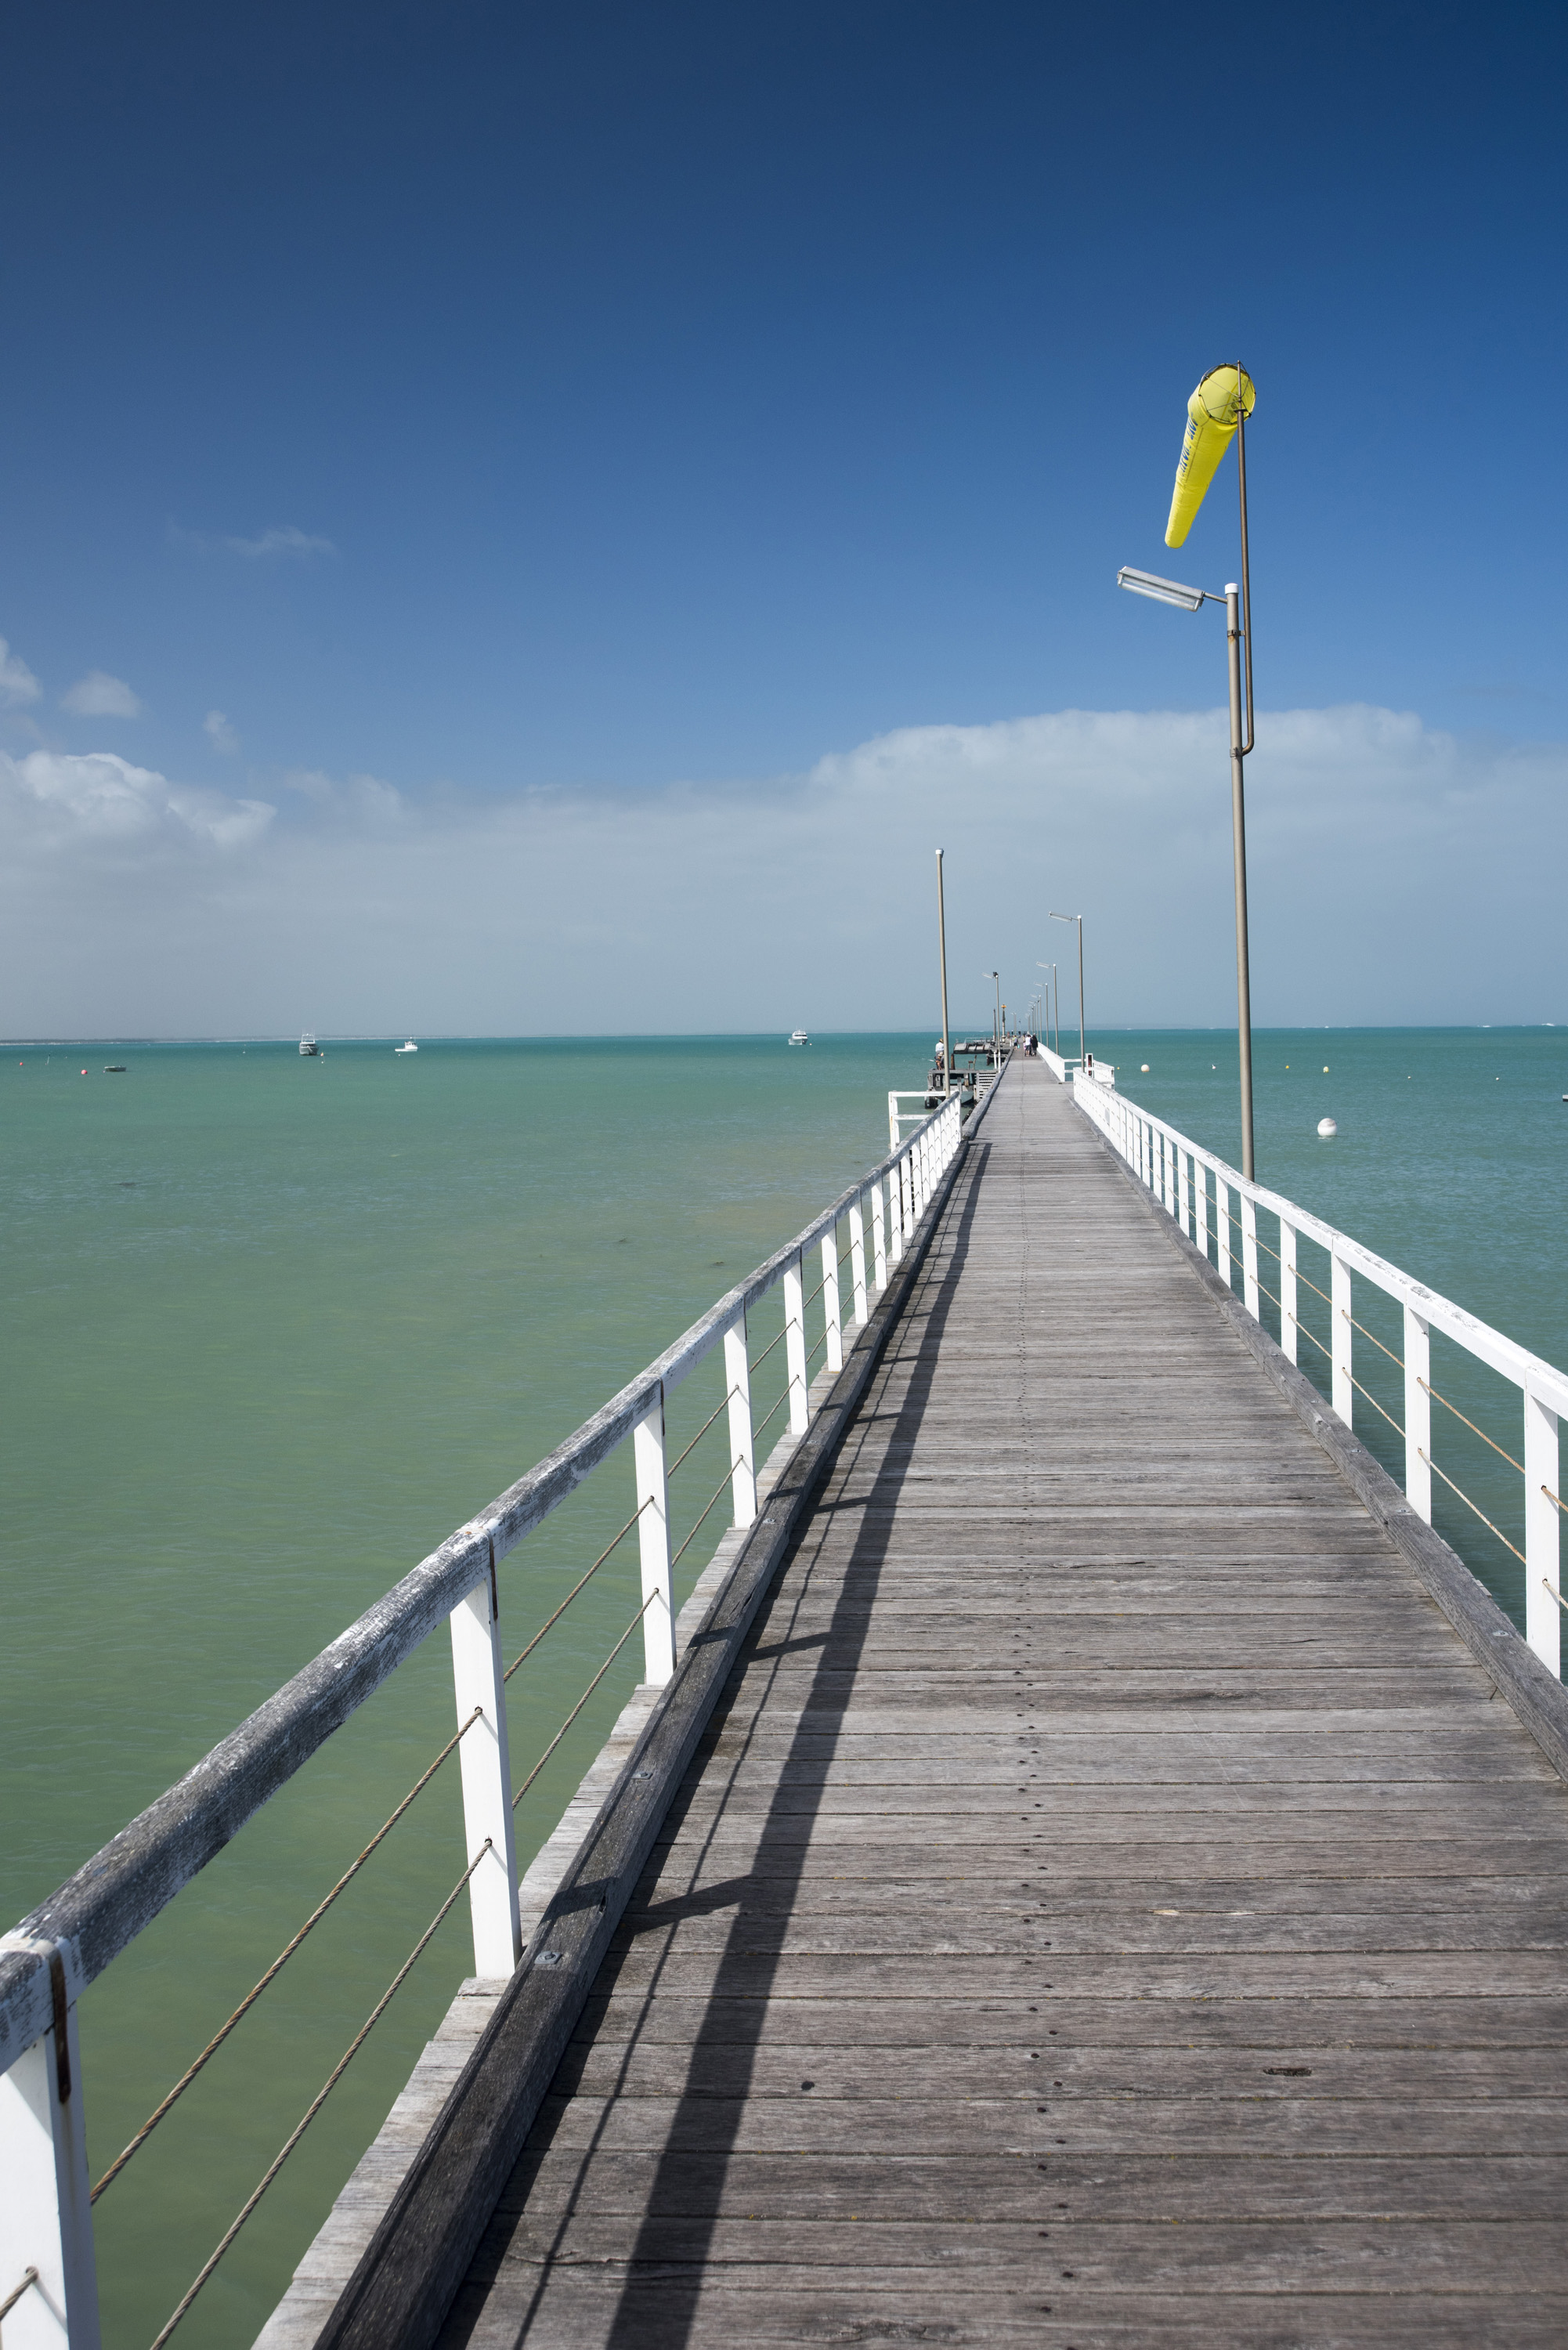 The long beachfront jetty or boardwalk at Beachport, Australia extending away into the ocean with a yellow wind sock against a blue sky